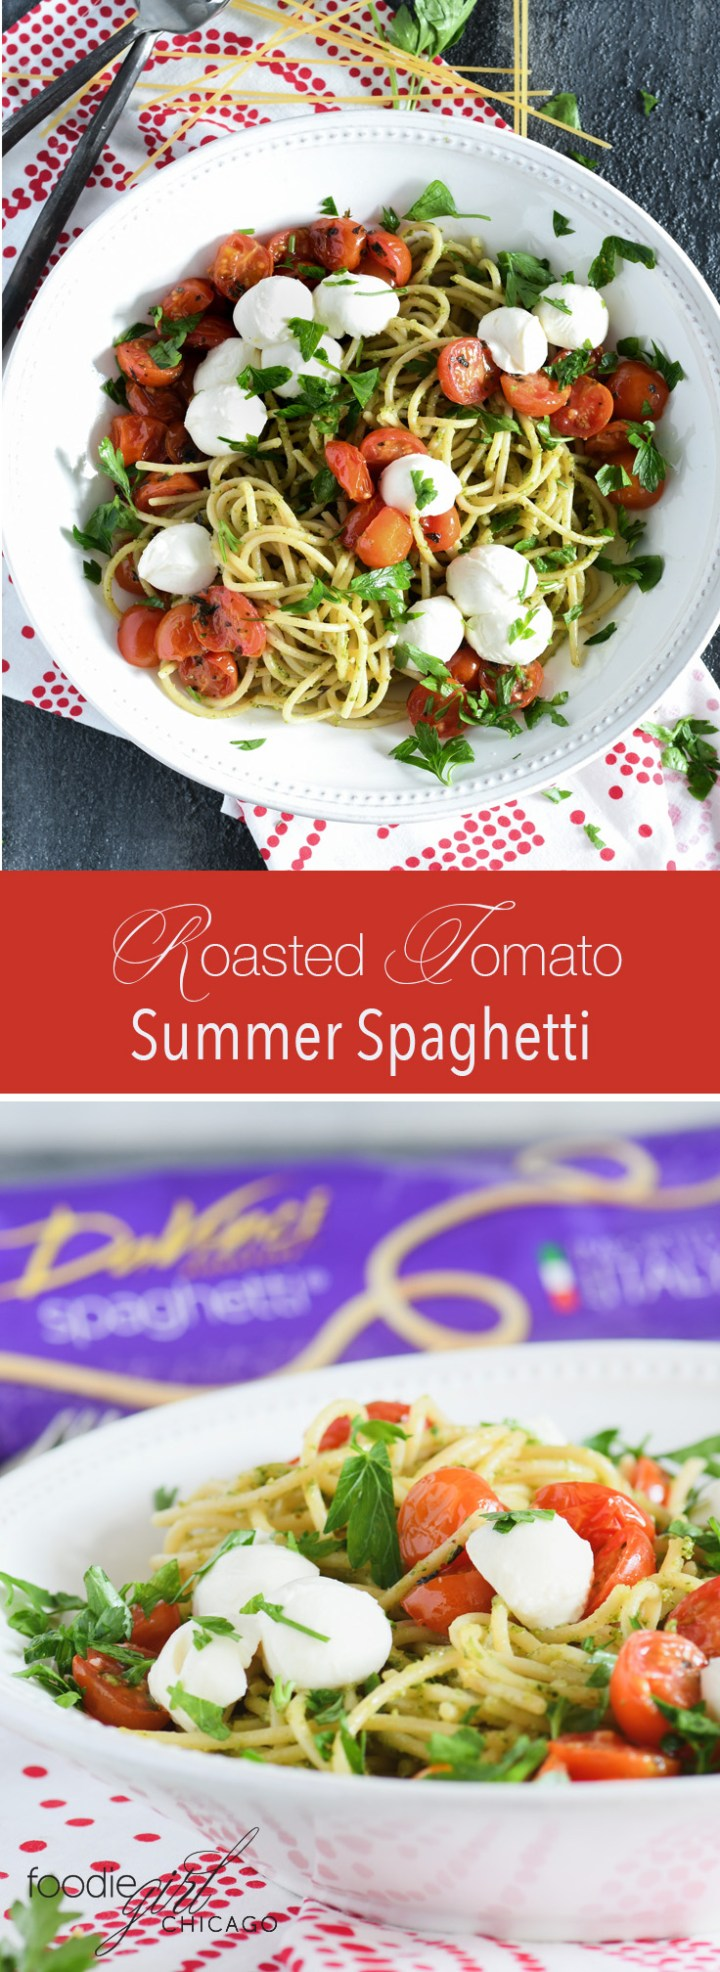 What's better than the garden fresh flavor you get from end of season tomatoes?  That fresh flavor paired with DaVinci spaghetti to give you the perfect light end of summer meal! #ad